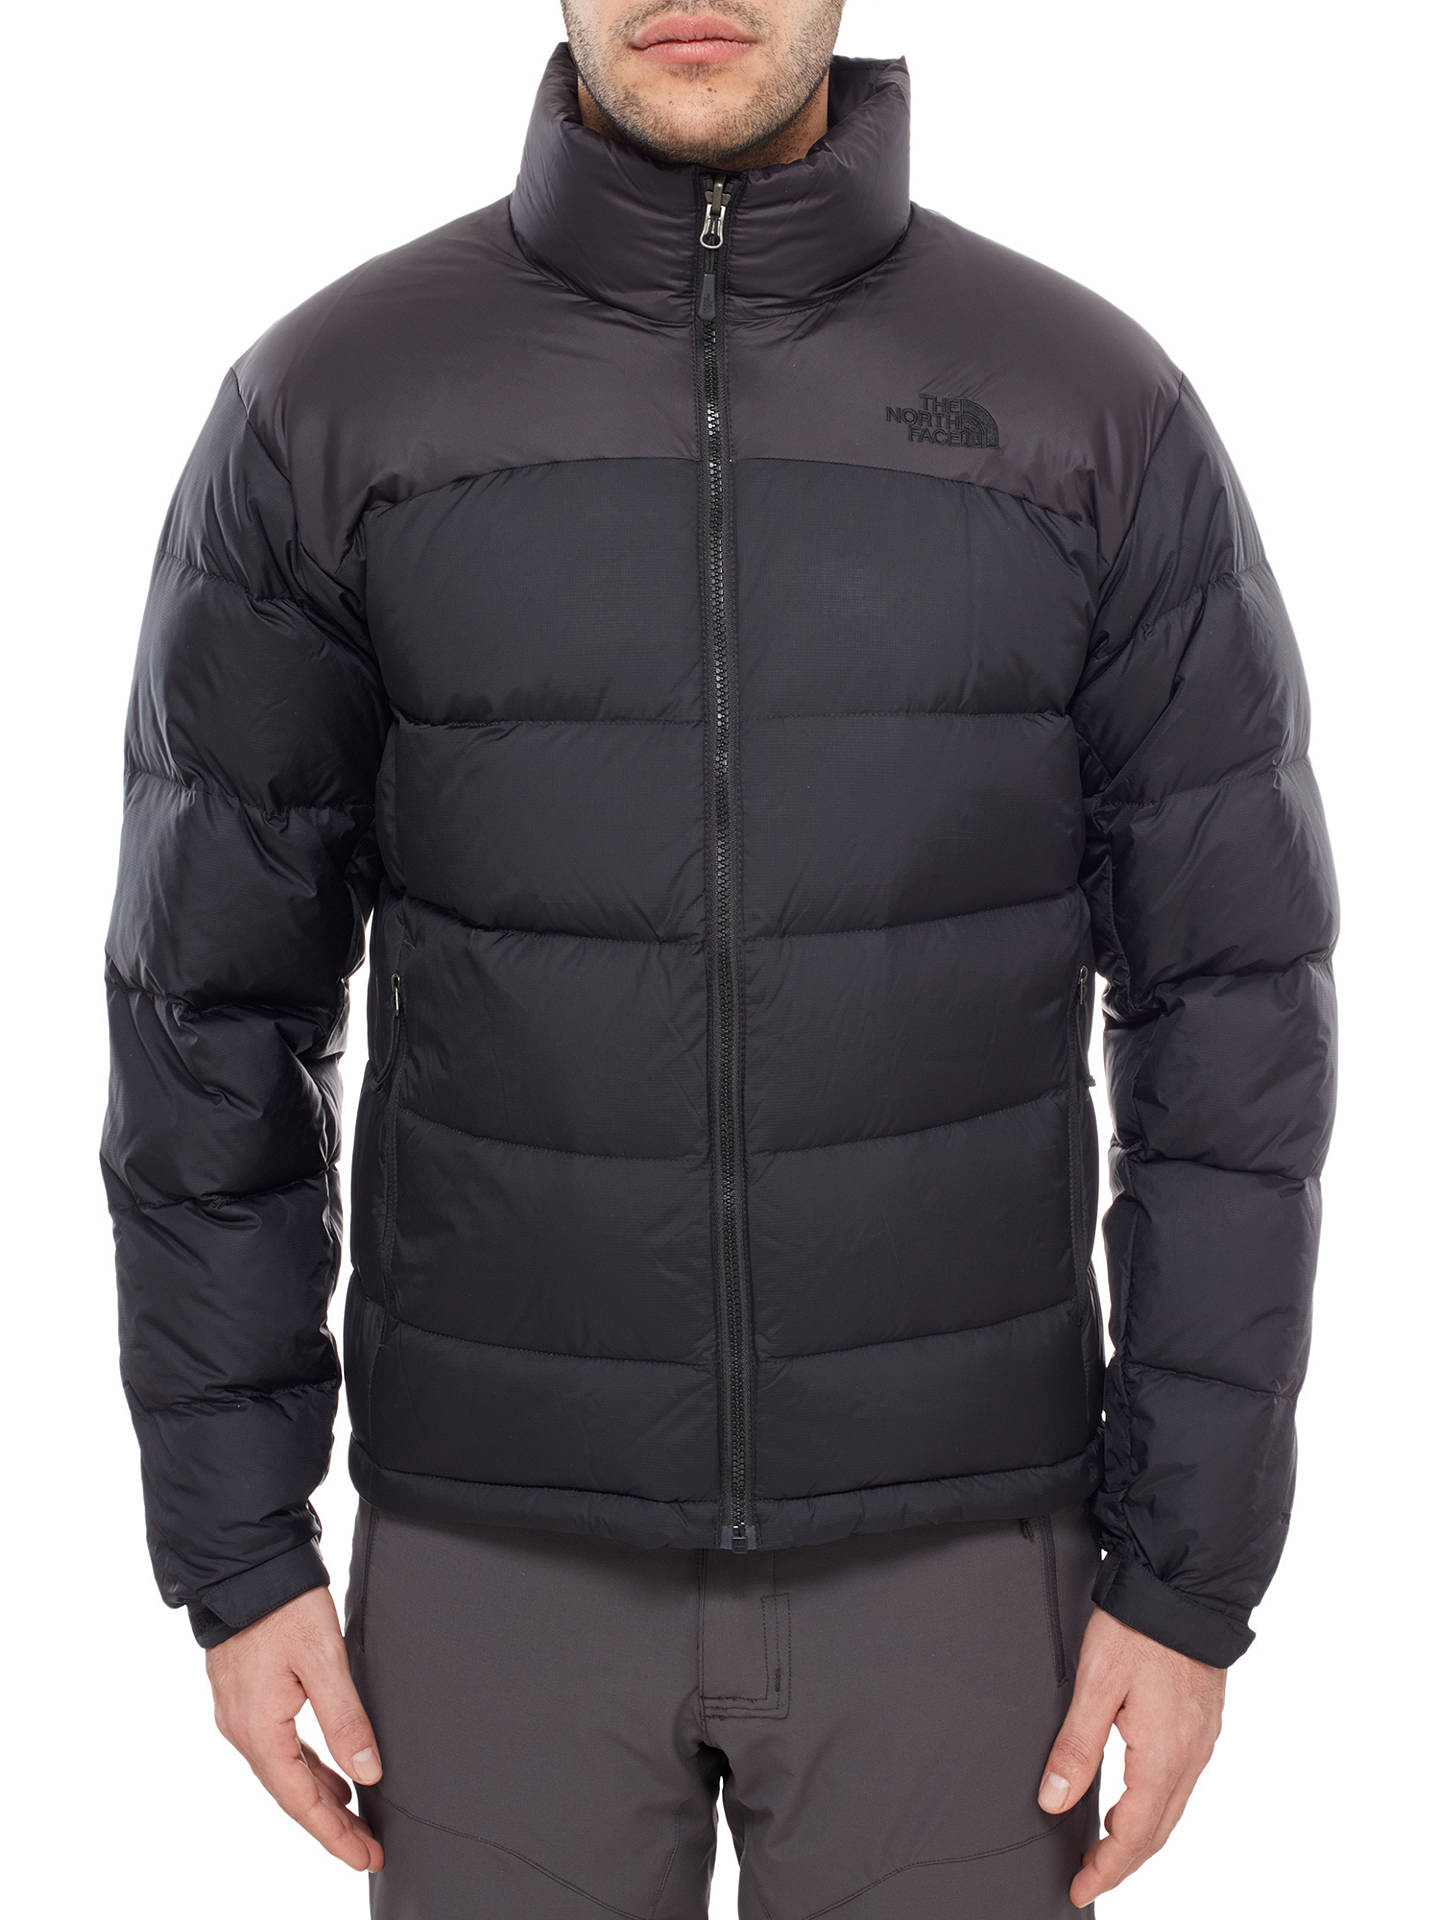 3bfc048c0 The North Face Nuptse Down Men's Jacket, Black at John Lewis & Partners